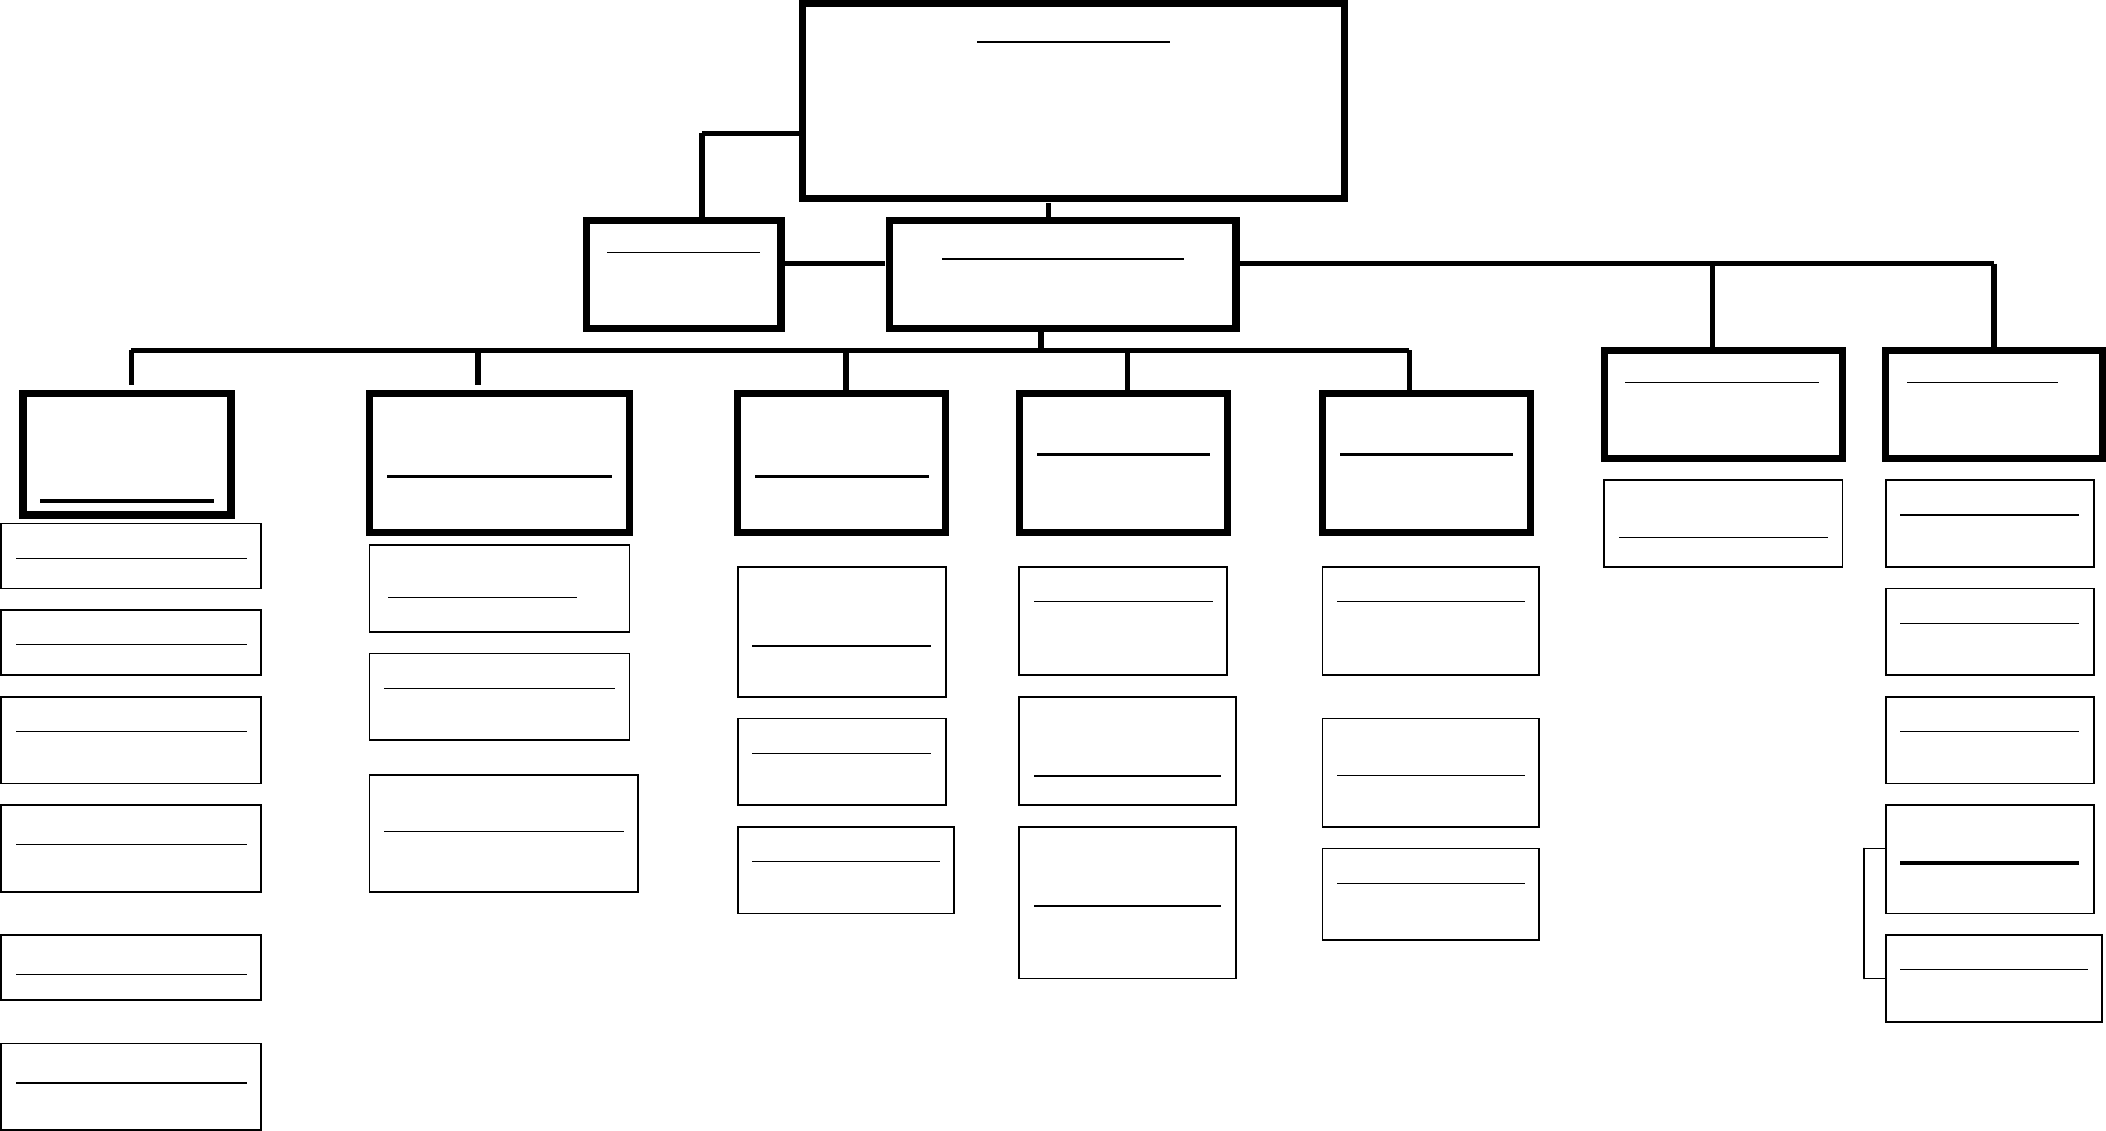 organograms templates - blank organizational chart cumberland college free download